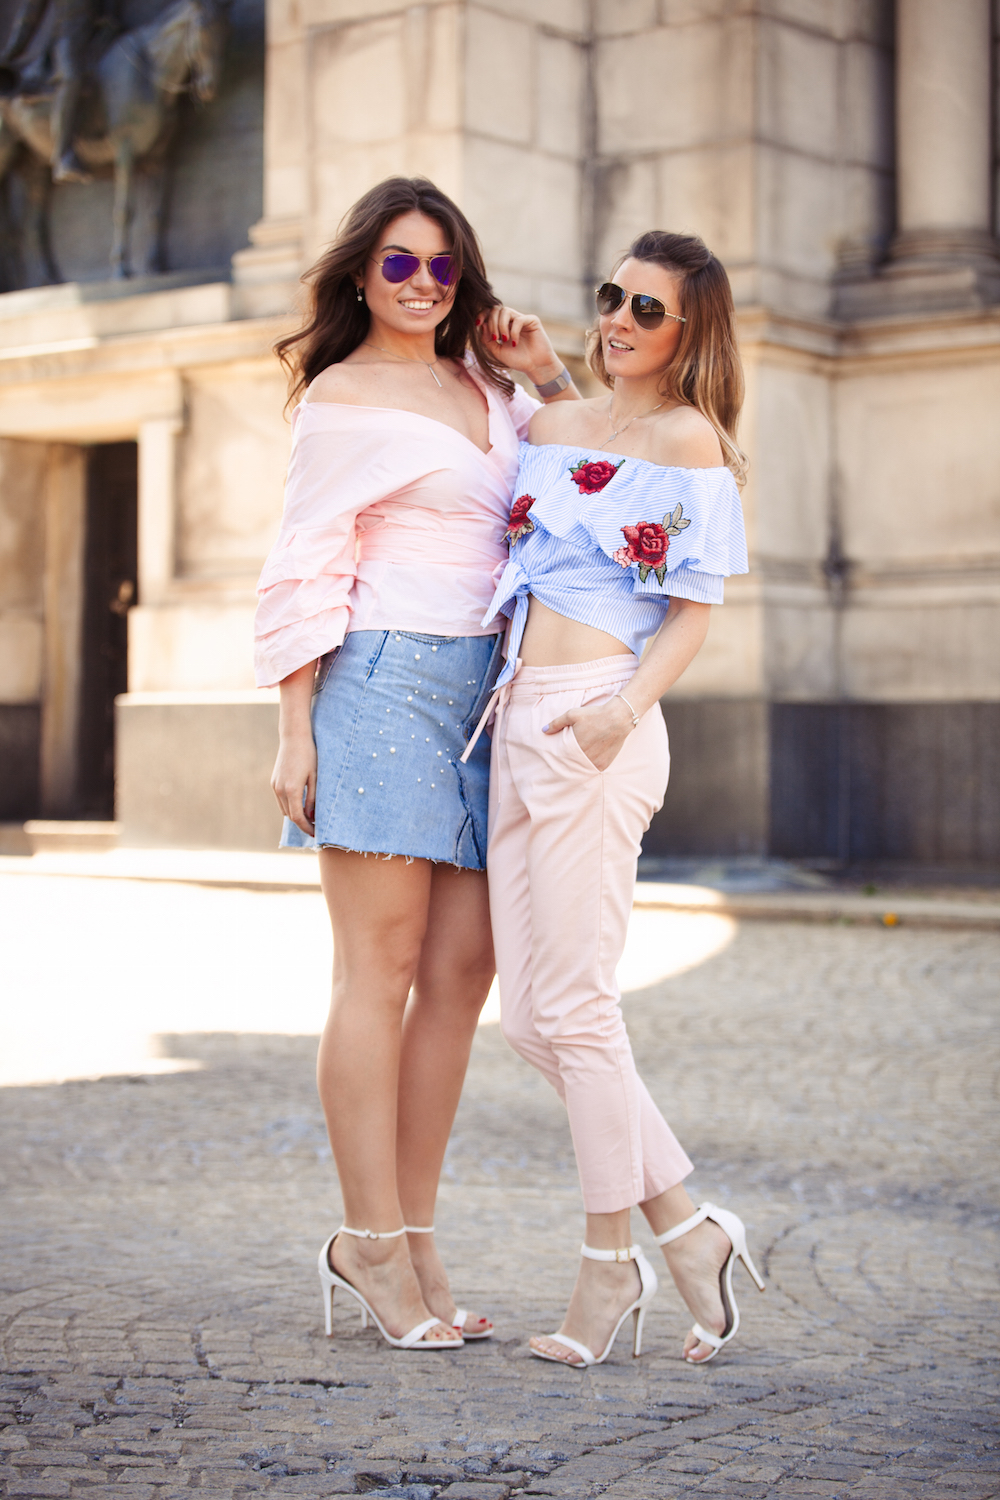 shein-nycfashionista-nycstyle-trends-allbuenothings-trend 2017-trend-spring